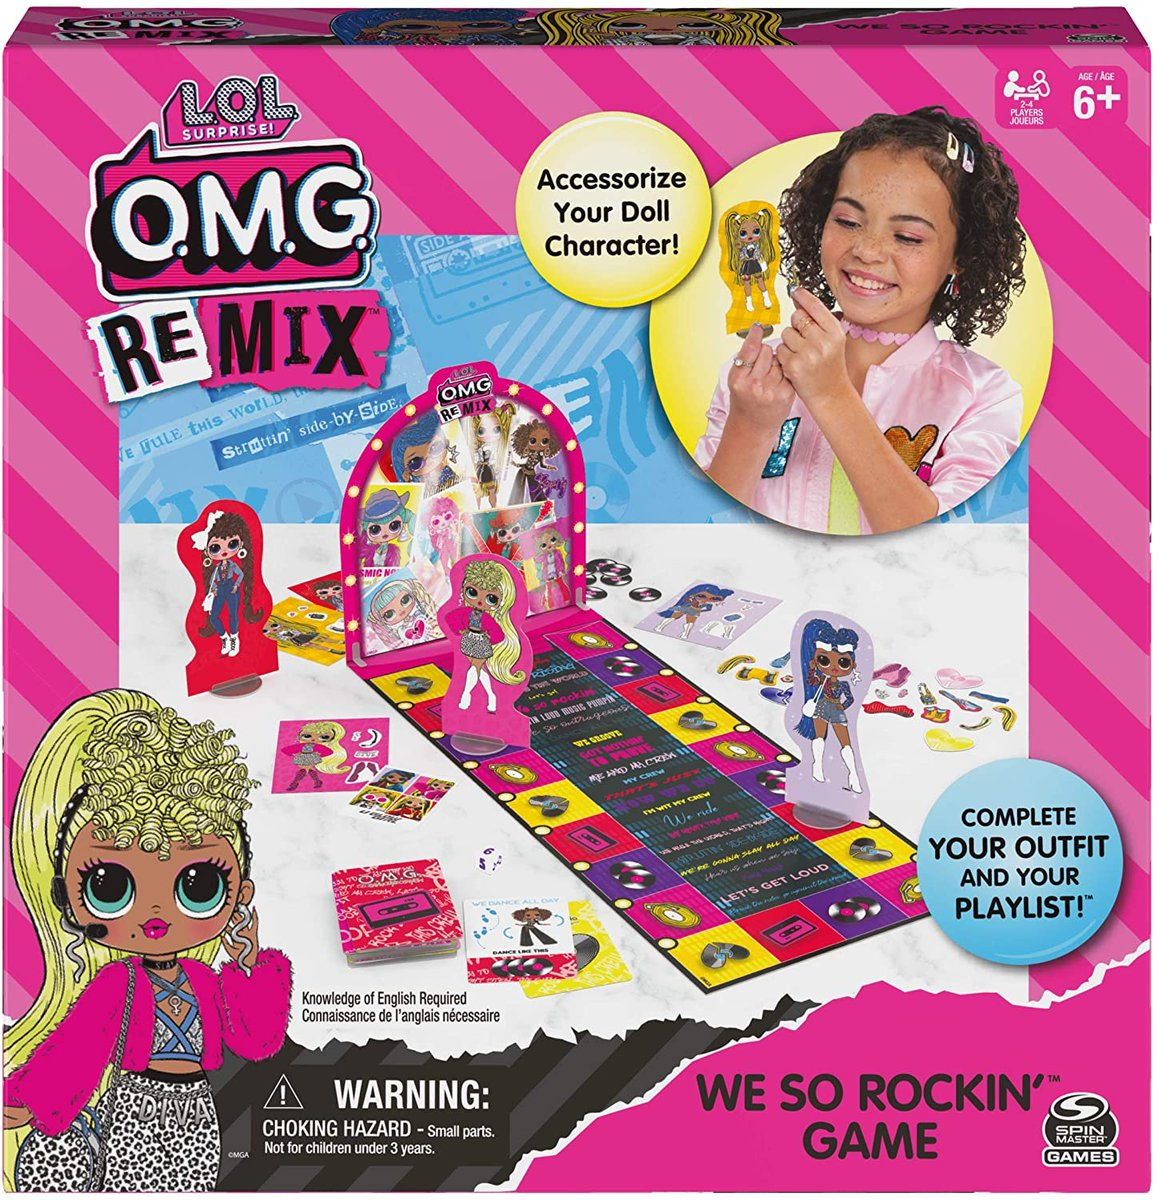 PRICE DROP  Spin Master Games L.O.L. Surprise! OMG We So Rockin'  Only $7.49!!  2